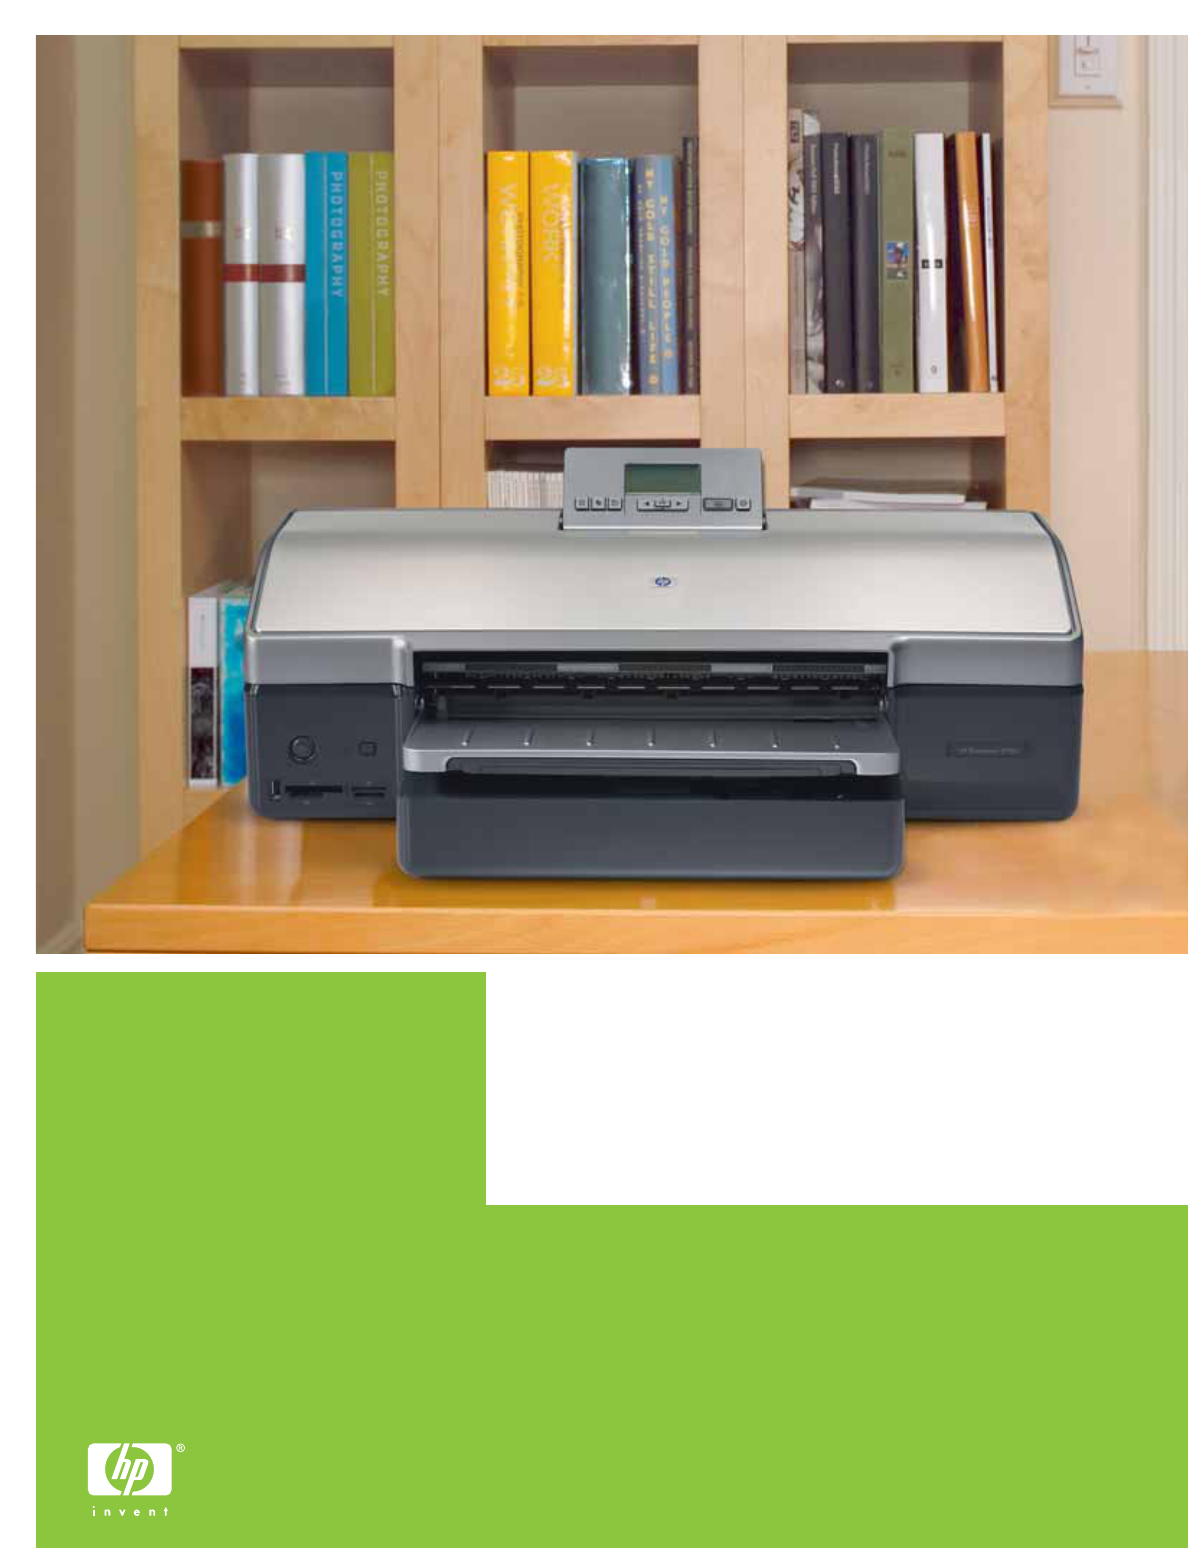 Super Hp Printing And Digital Imaging Products Selection Guide Download Free Architecture Designs Photstoregrimeyleaguecom